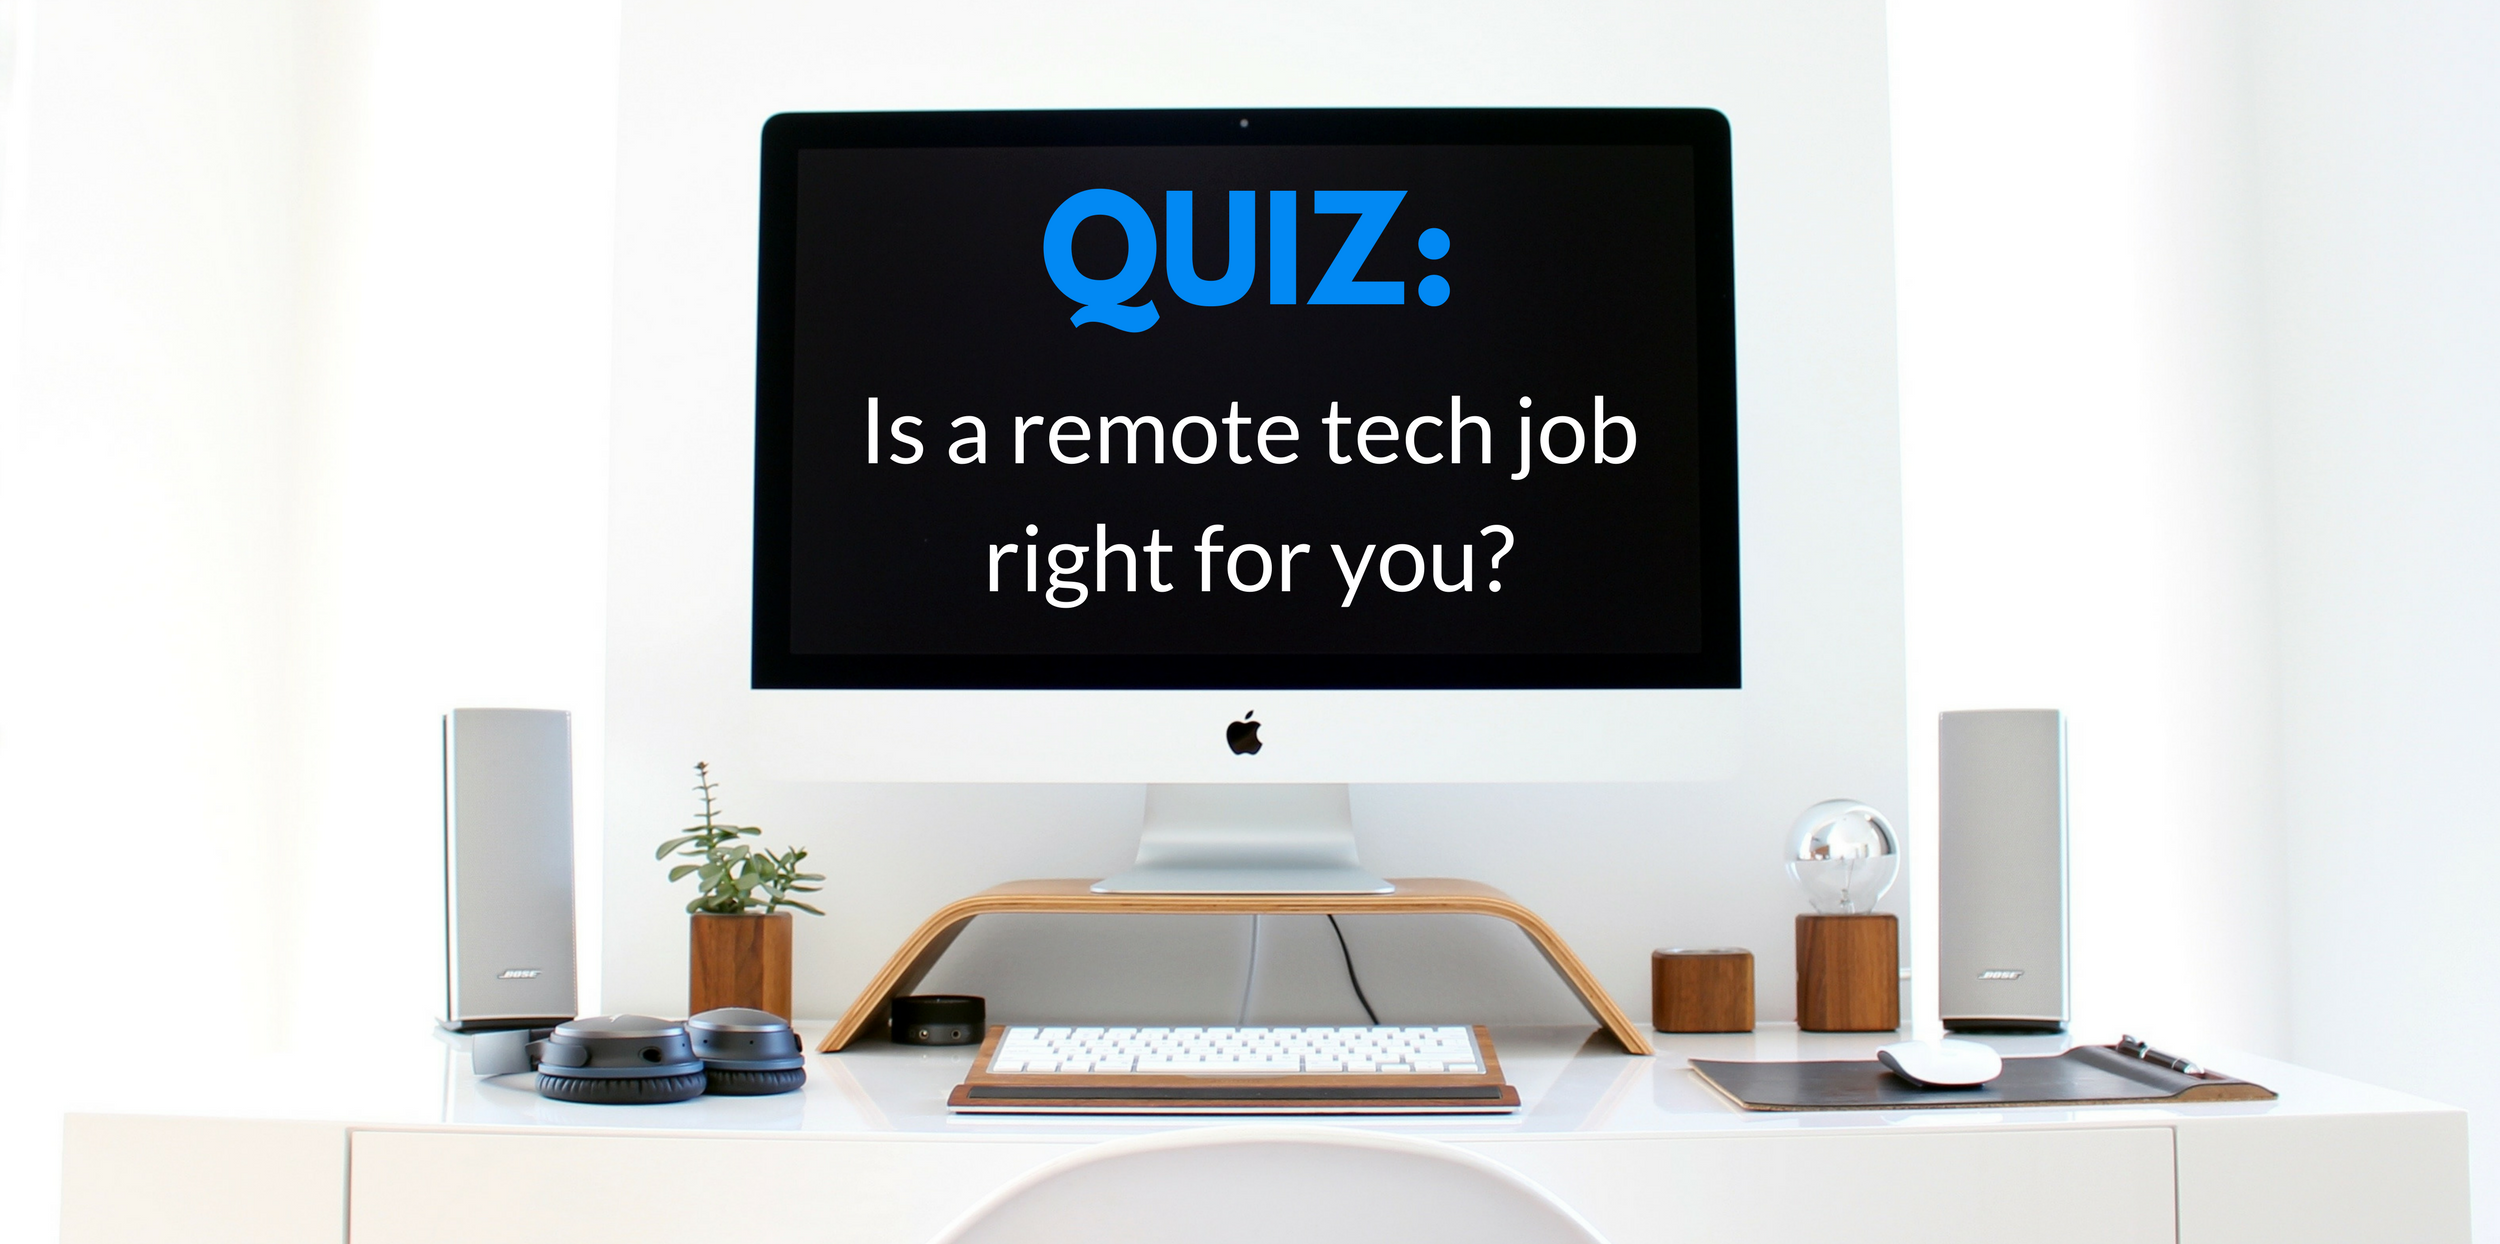 Are You Considering Going Remote More People Than Ever Working From Home And Saying Goodbye To Their Commute Hello Flexibility Aren T The